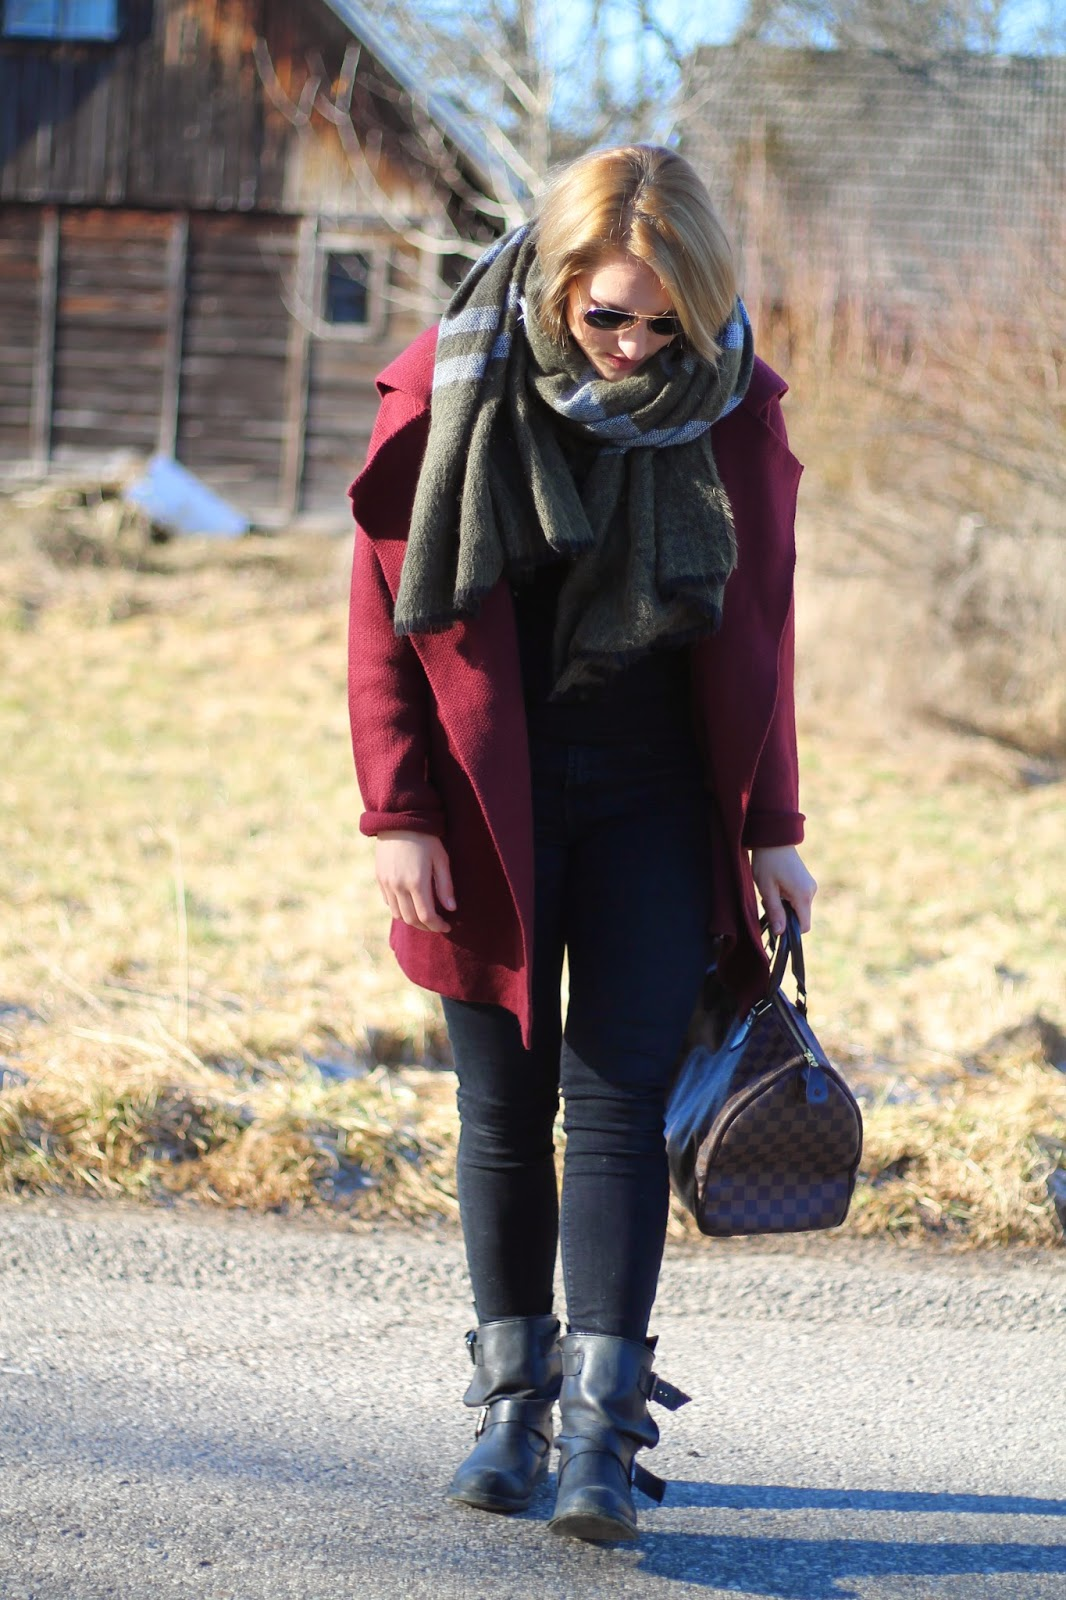 Fashionblogger Austria / Österreich / Deutsch / German / Kärnten / Carinthia / Klagenfurt / Köttmannsdorf / Winter Look / Classy / Edgy / Winter / WInter Style 2014 / Winter Look / Fashionista Look / Streetstyle Klagenfurt Vienna Wien Austria / /Winter Outfit /Jeans Zara Black Schwarz Skinny / Boots Biker Boots Zara Schwarz Black / Cardigan Red Bordeauxrot Weinrot Sheinside OVersize / Daniel Wellington Watch / Zara Scarf Schal Blogger Must Have / RAy Ban Aviator Sunglasses Pilotenbrille / Louis Vuitton Speedy Damier Ebene 35 /